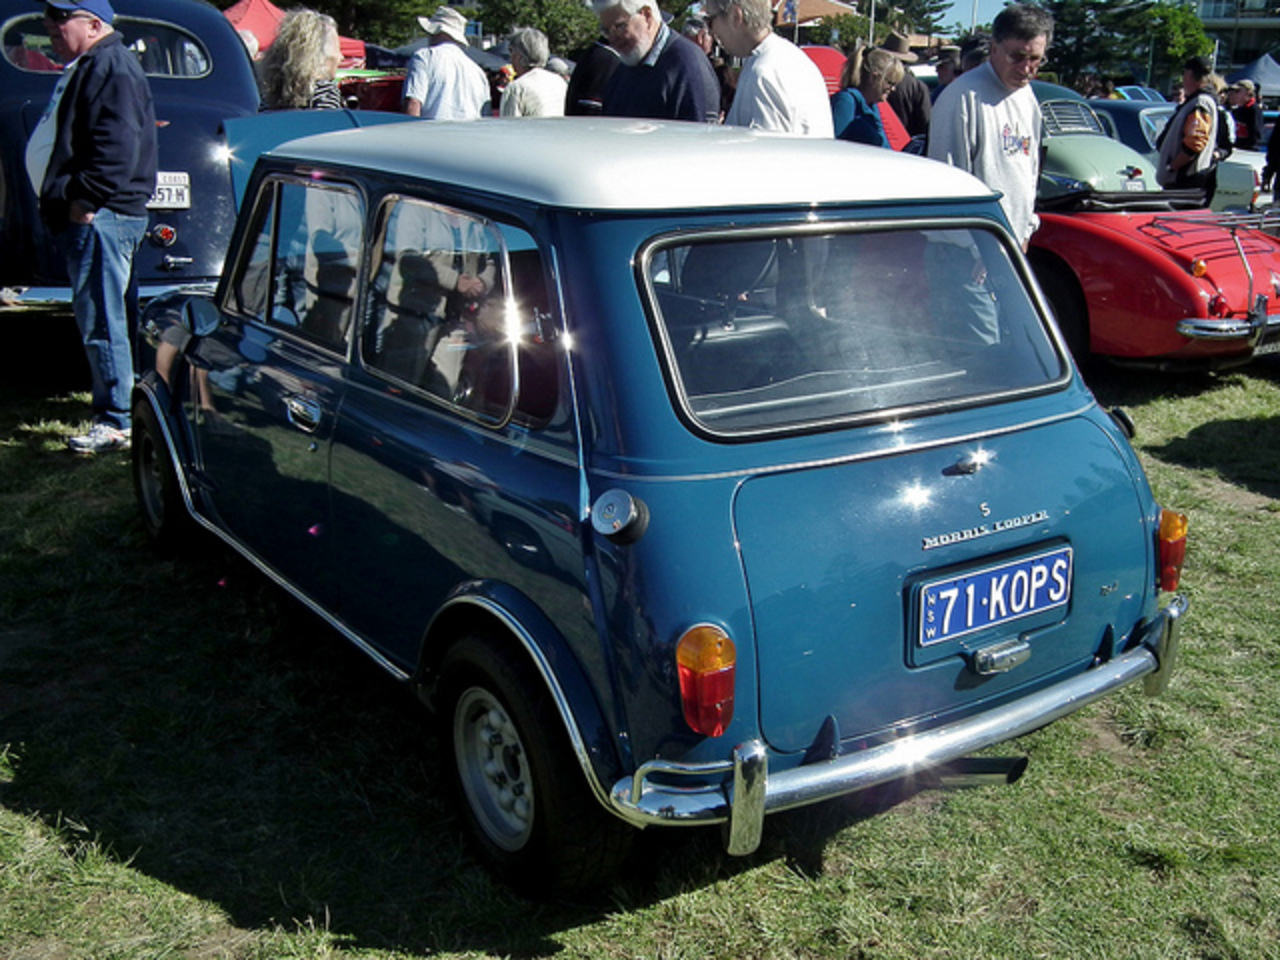 1971 Morris Mini Cooper S Mk II sedan | Flickr - Photo Sharing!